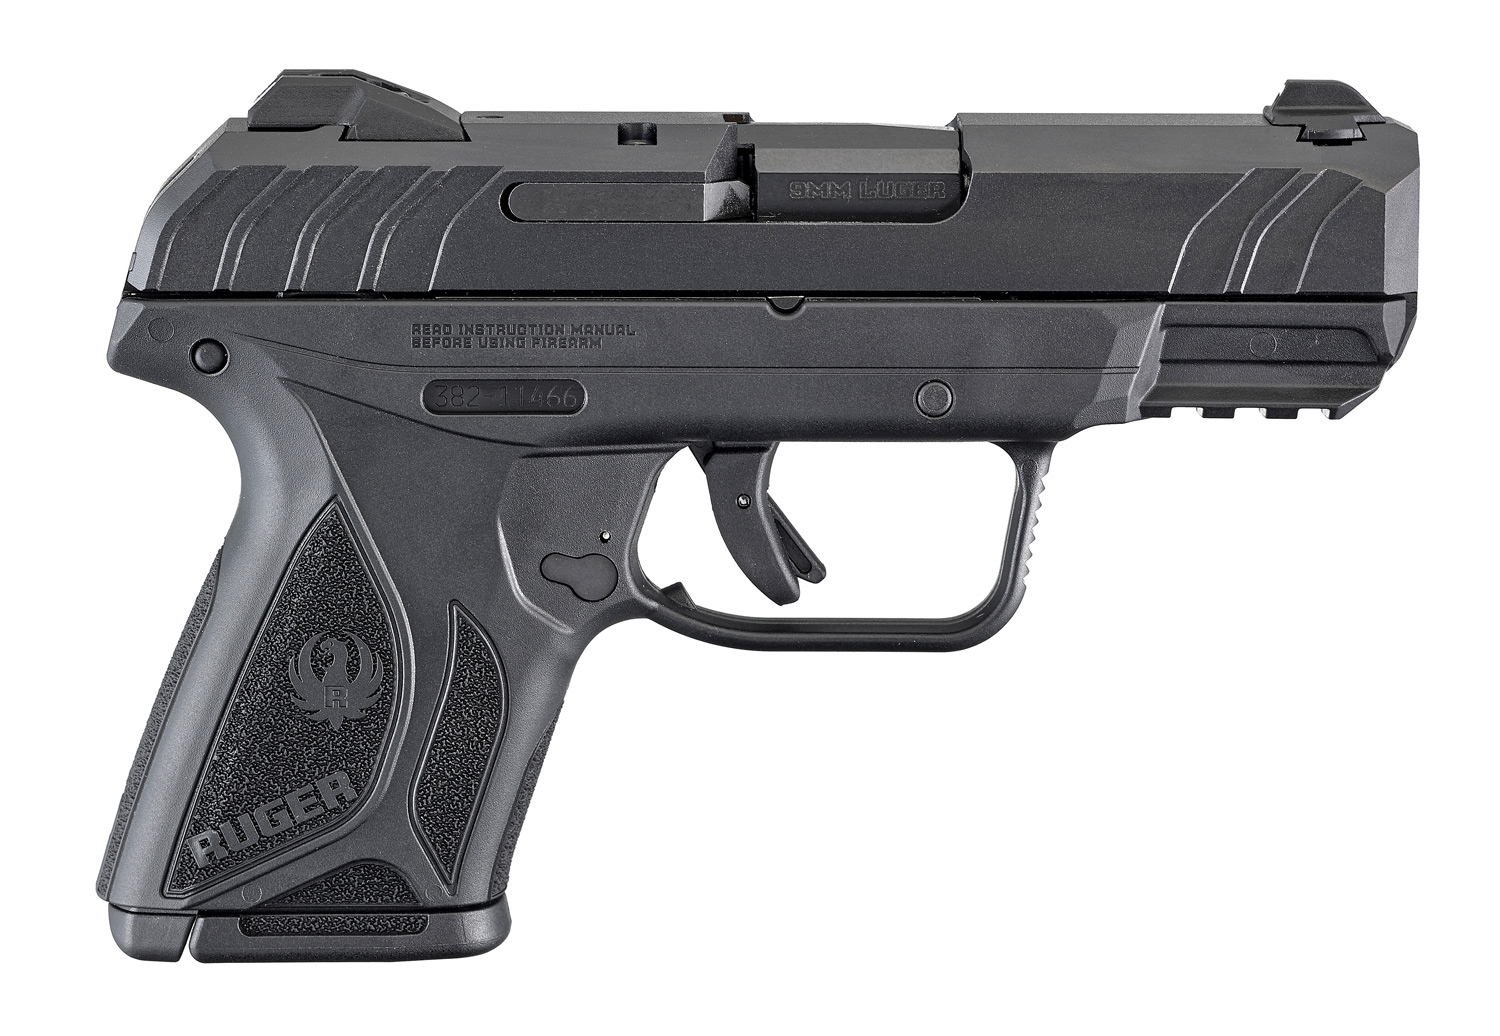 "Security 9 Compact 9mm 3.42"" B"